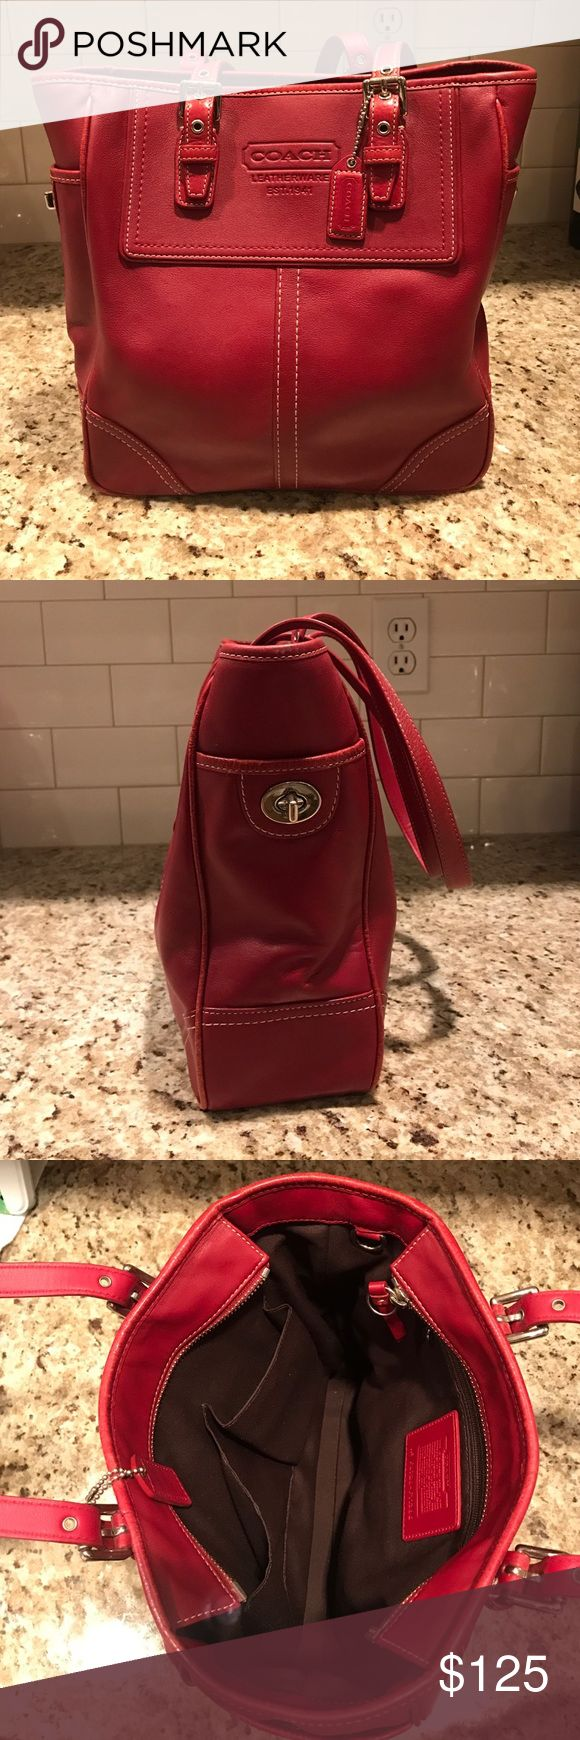 Coach Red Shoulder Bag Coach red Shoulder Bag. Made from genuine cowhide leather. Interior is dark brown material. Interior has one zippered pocket and two open pockets. Zip enclosure at the top of the purse. Great condition and was barely used. Coach Bags Shoulder Bags